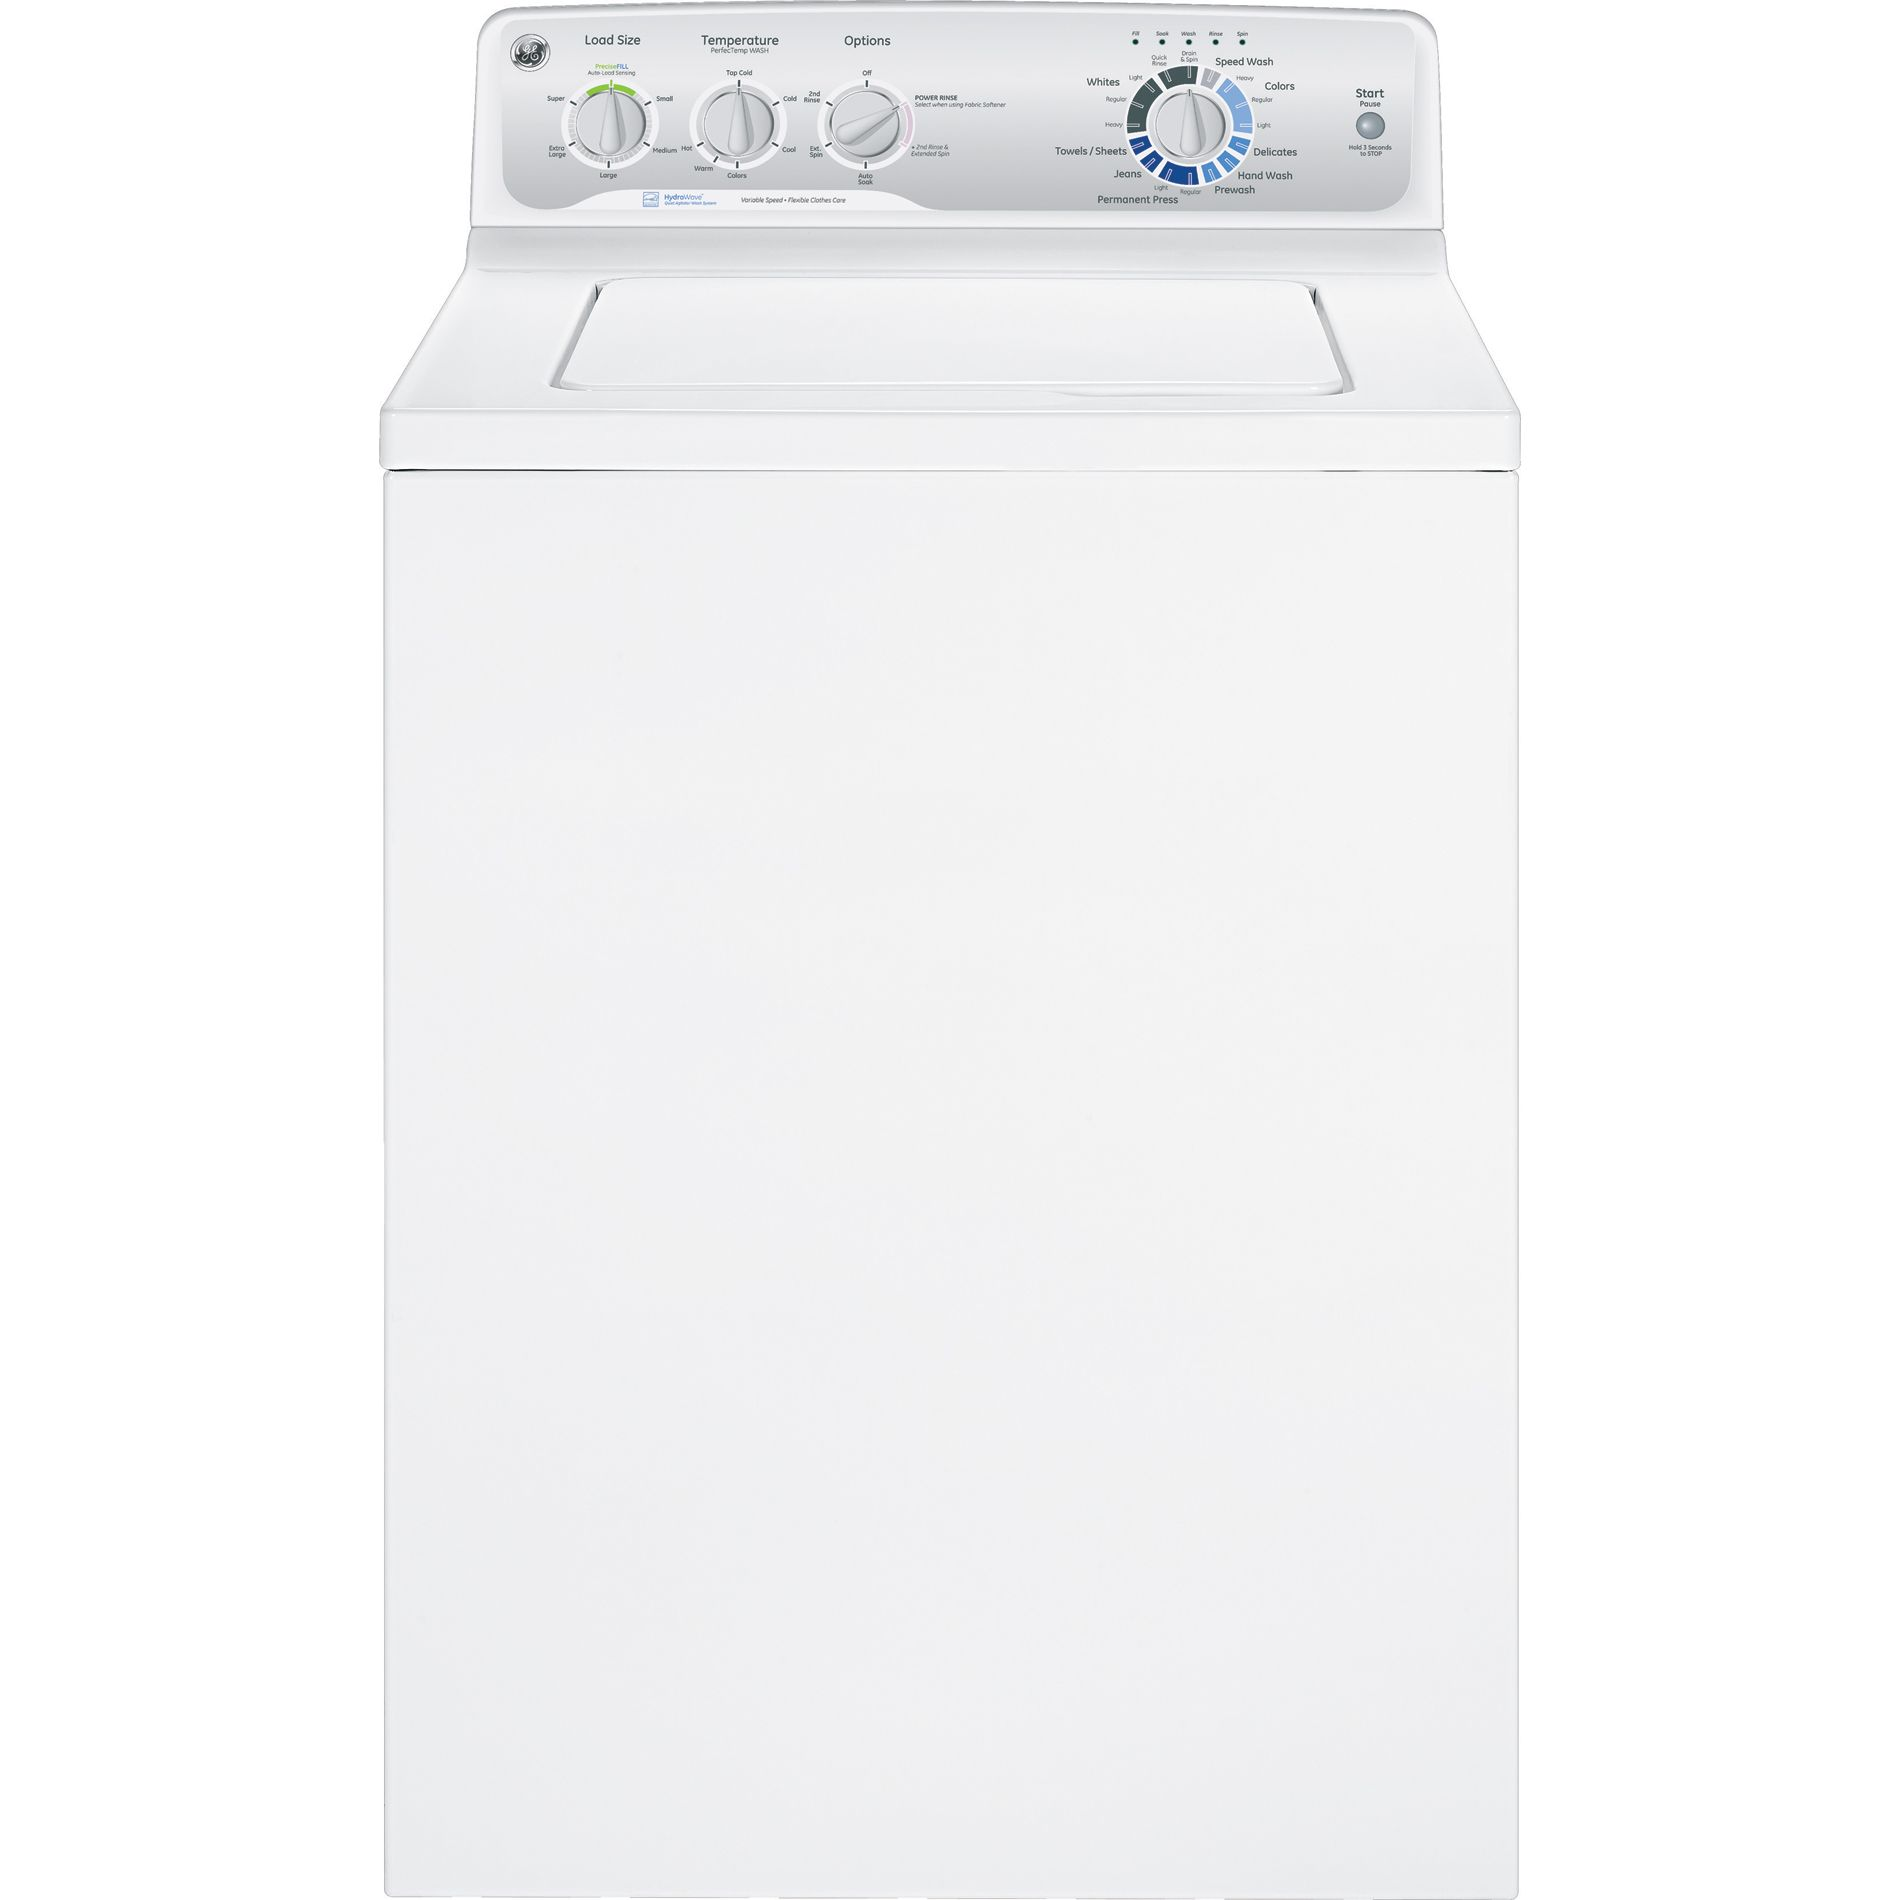 3-9-cu-ft-Top-Load-Washer-White